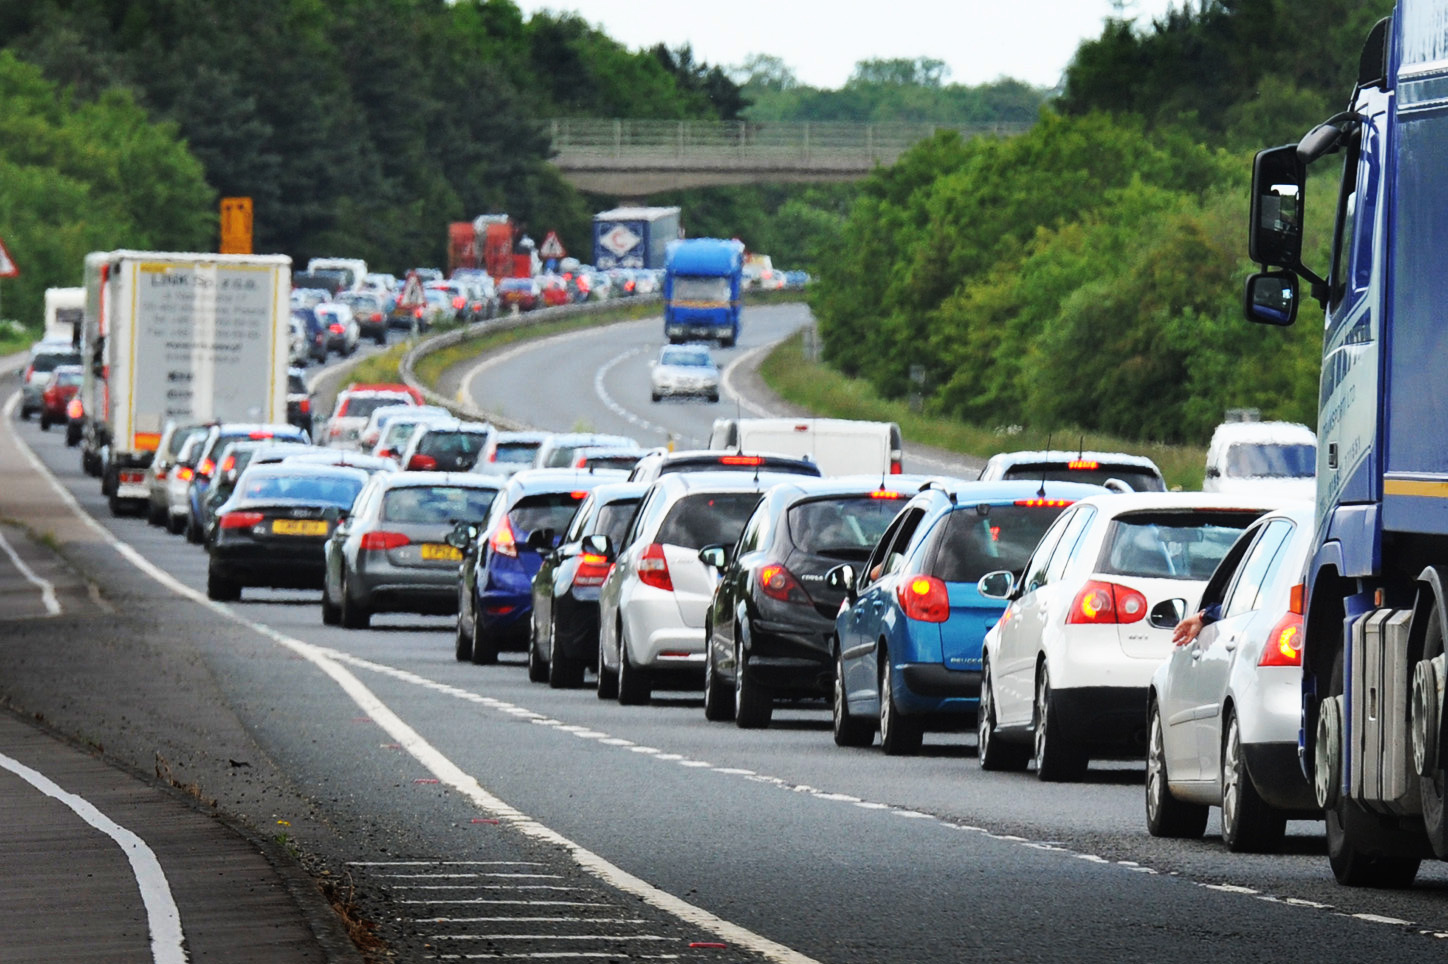 Queues on the A40 near Witney